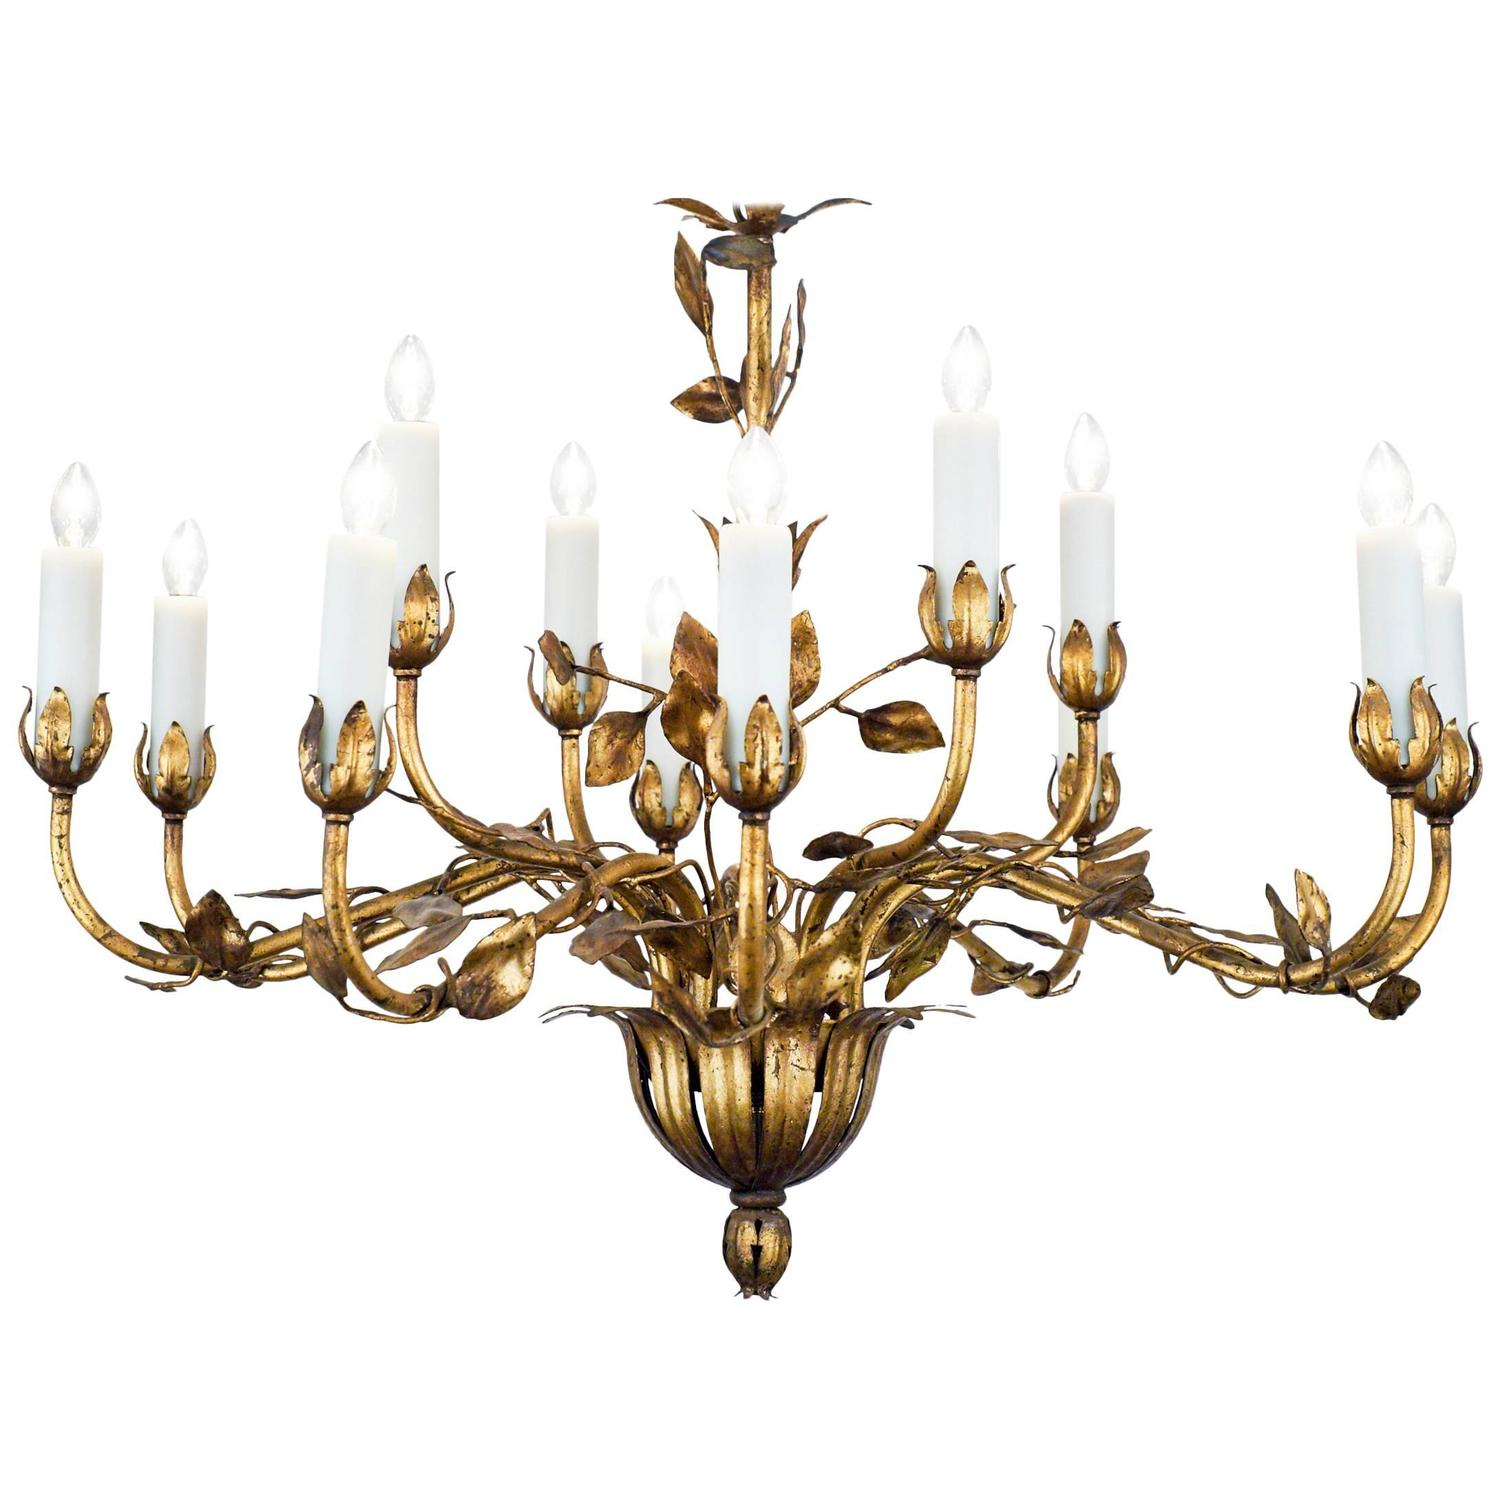 Magnificent 1940s spanish 16 arm gold toleware chandelier at 1stdibs french gold leaf tole chandelier arubaitofo Choice Image